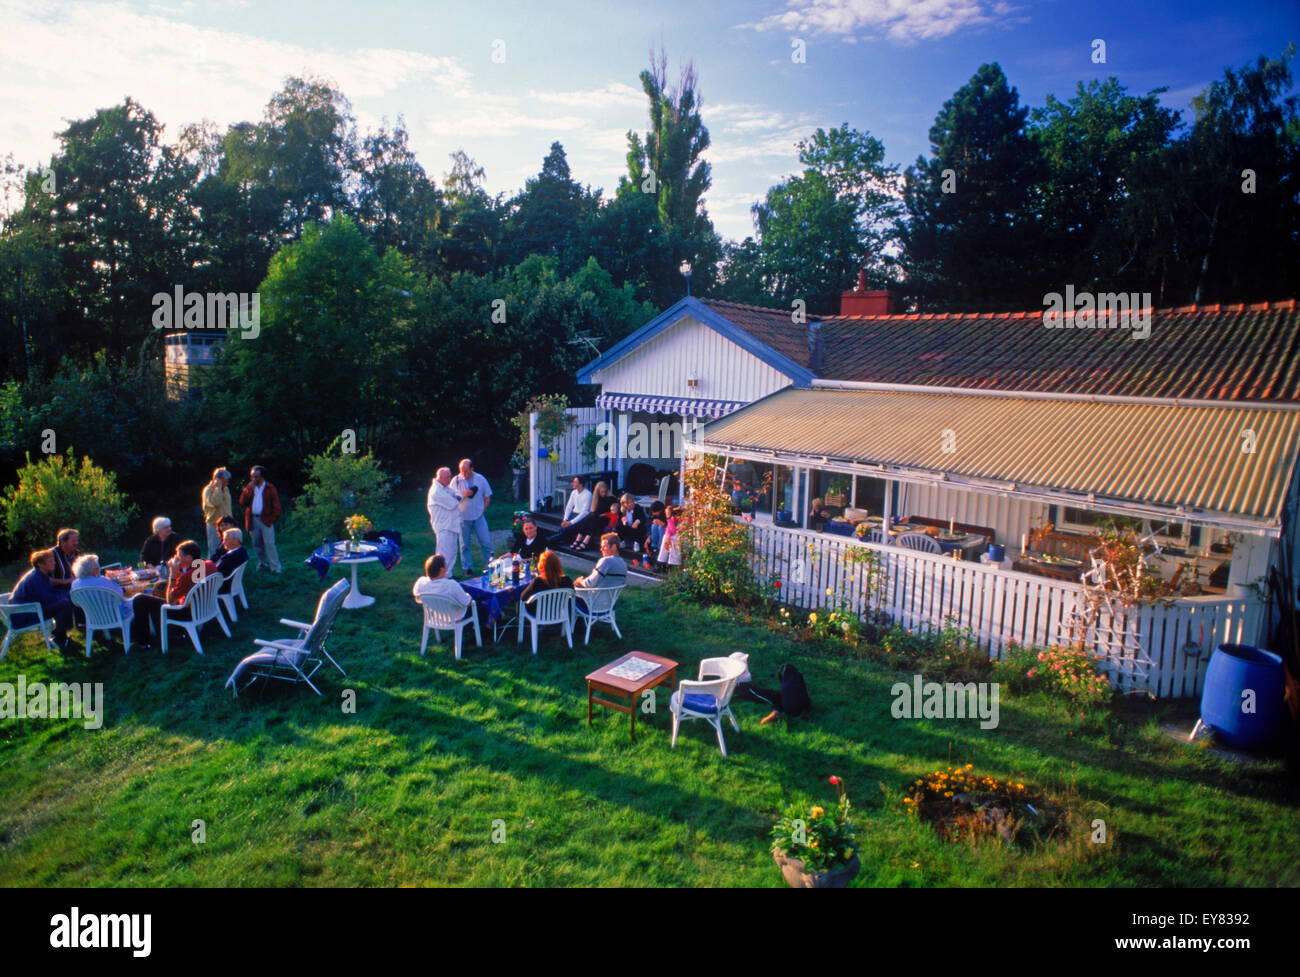 Friends sharing food, coffee and conversation at summer house on Tranholmen island in Stockholm Archipealgo in Baltic - Stock Image